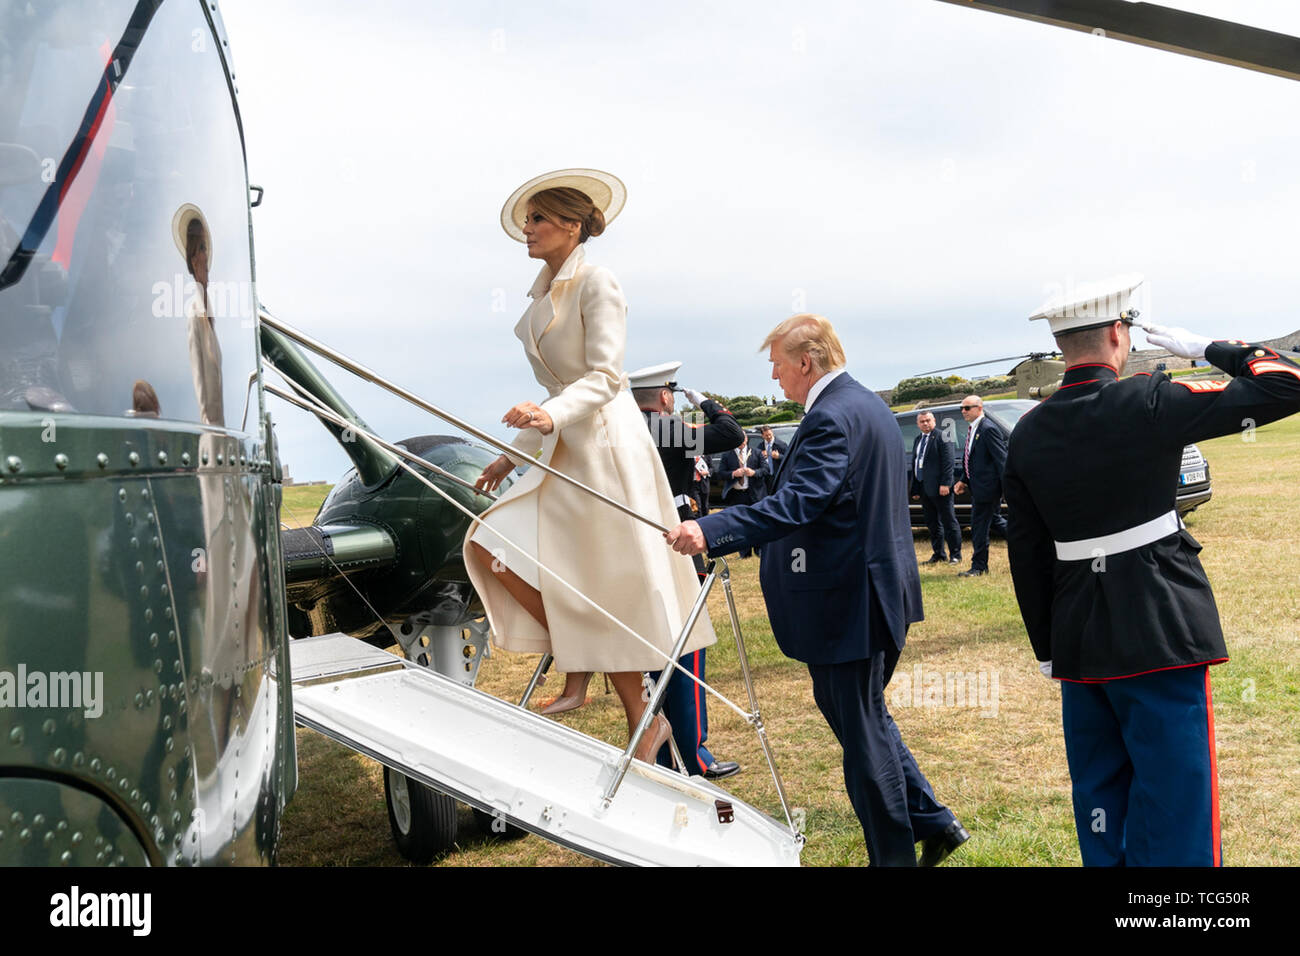 London, UK. 05th June, 2019. President Donald J. Trump and First Lady Melania Trump board Marine One at the Southsea Castle Landing Zone in Portsmouth, England Wednesday, June 5, 2019, en route to Southampton Airport. People: President Donald Trump, Melania Trump Credit: Storms Media Group/Alamy Live News - Stock Image